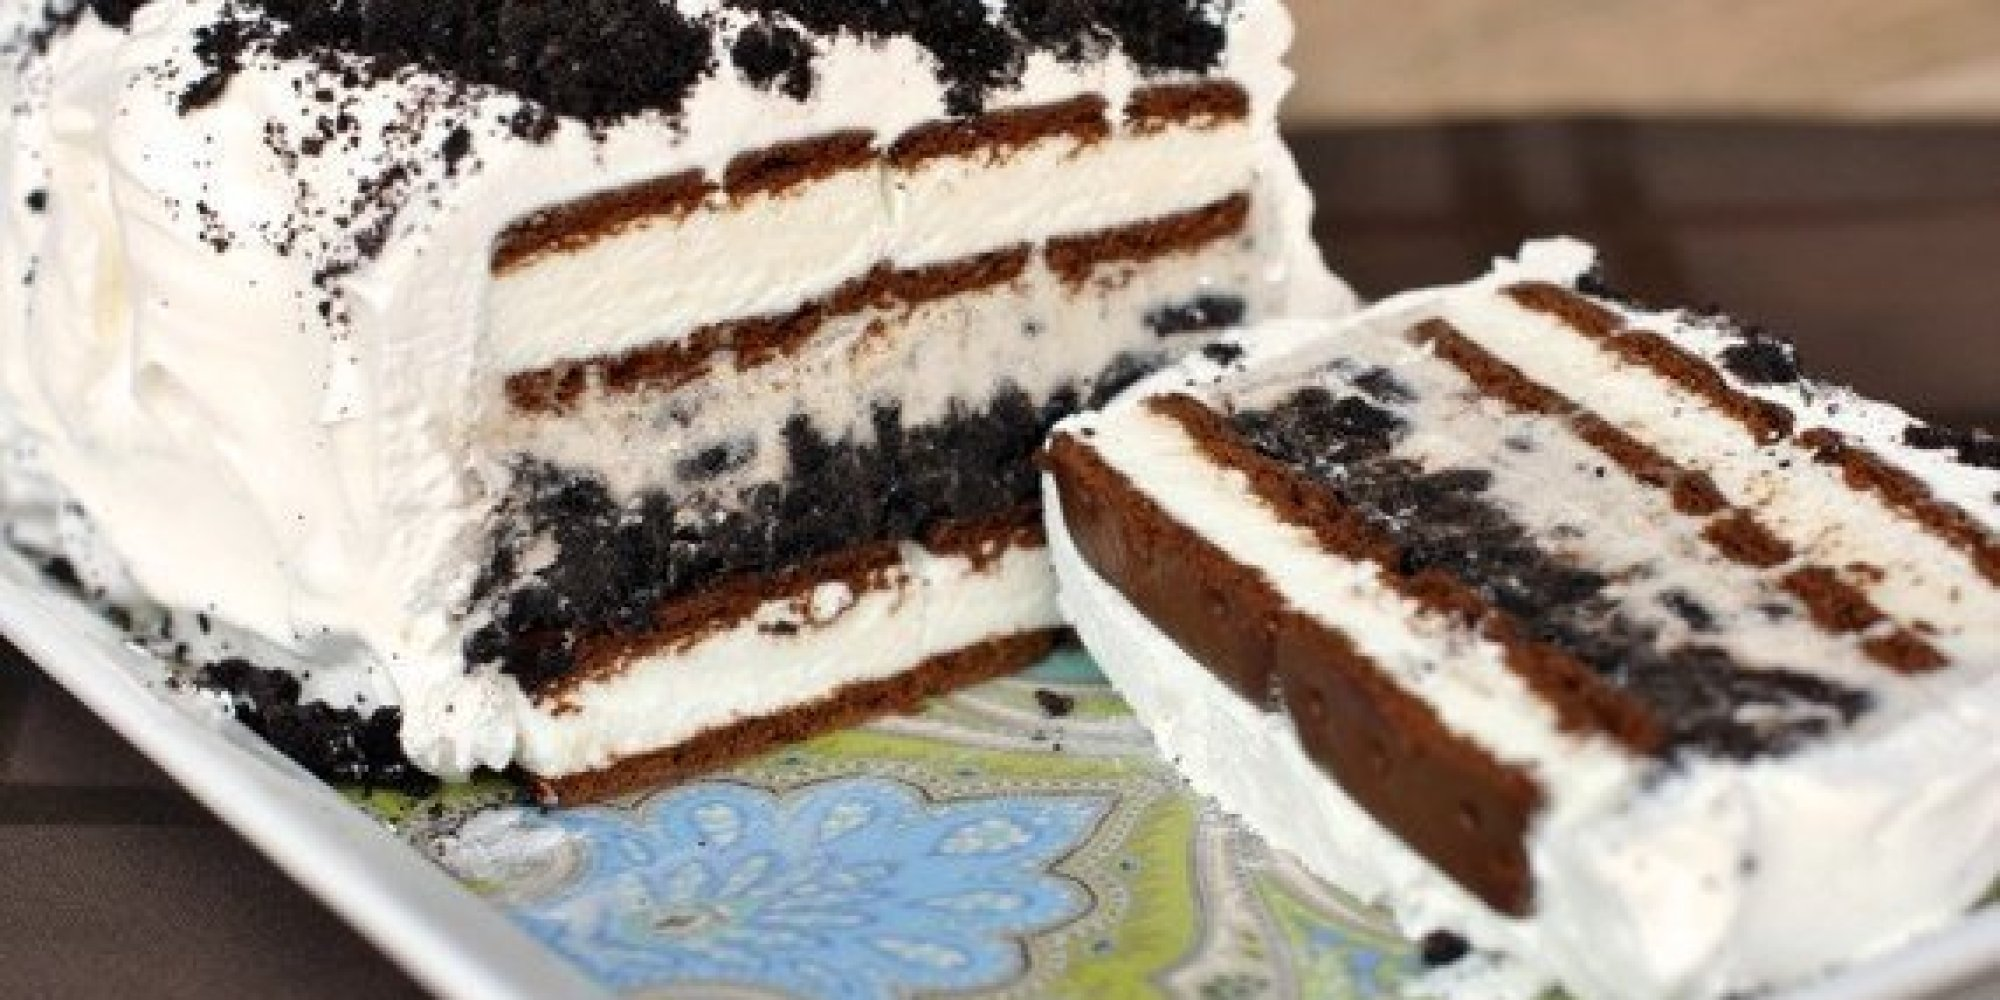 Market Basket Ice Cream Cake